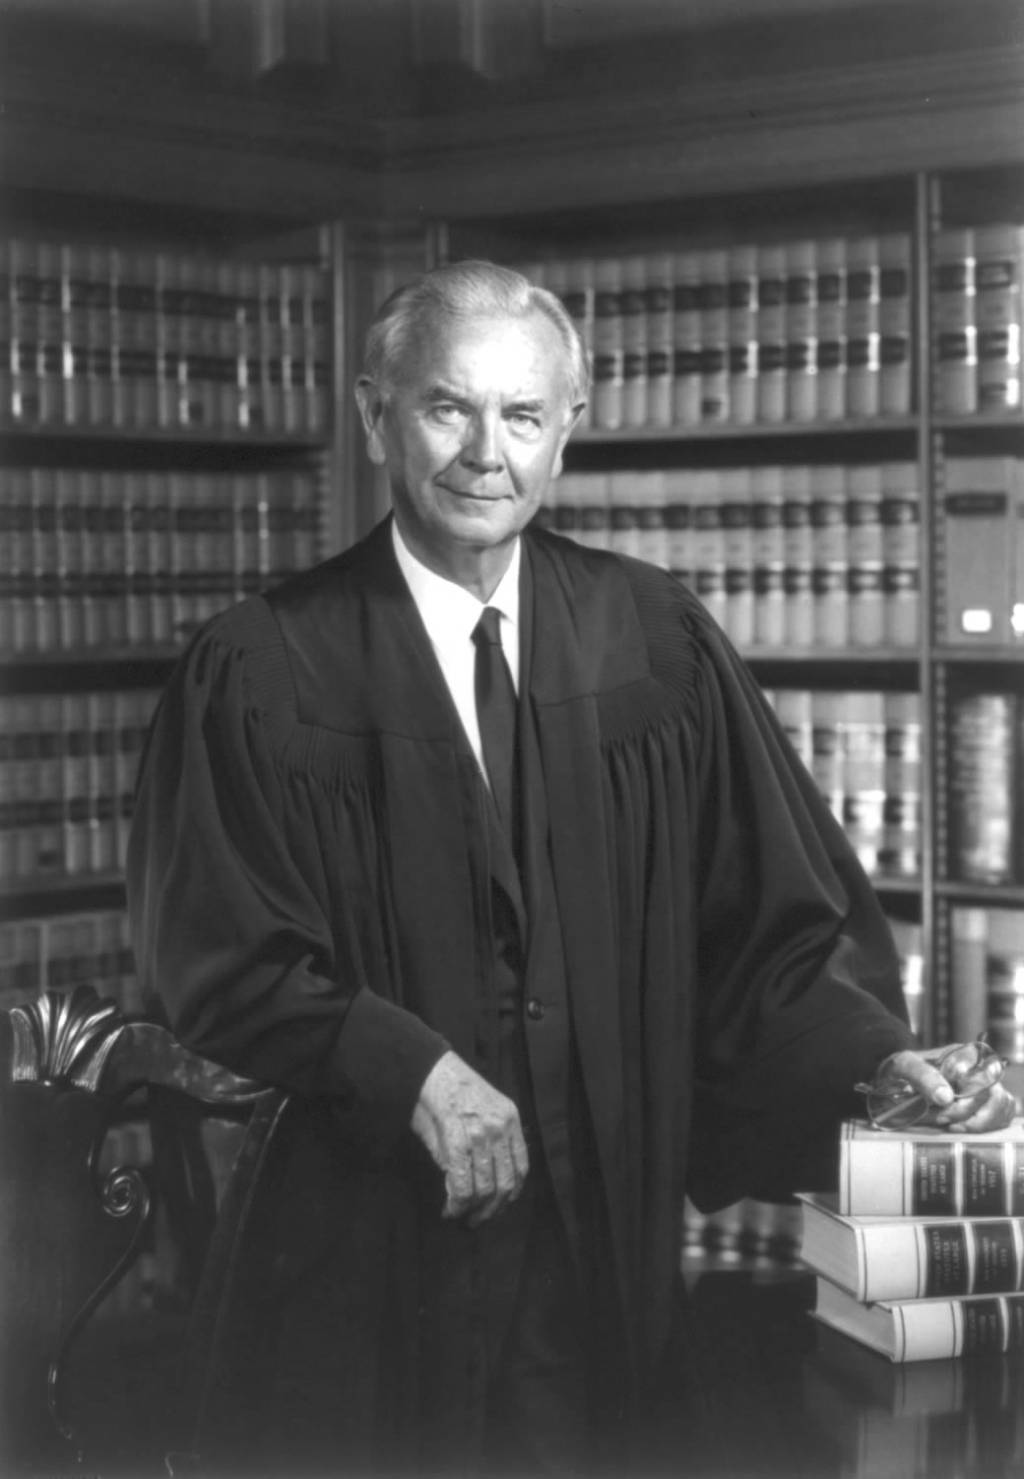 the case engle vs vitale essay Engel v vitale in 1951 the new york state board of engel v vitale essay vitale is a famous supreme court case that started in 1962 that dealt with the.